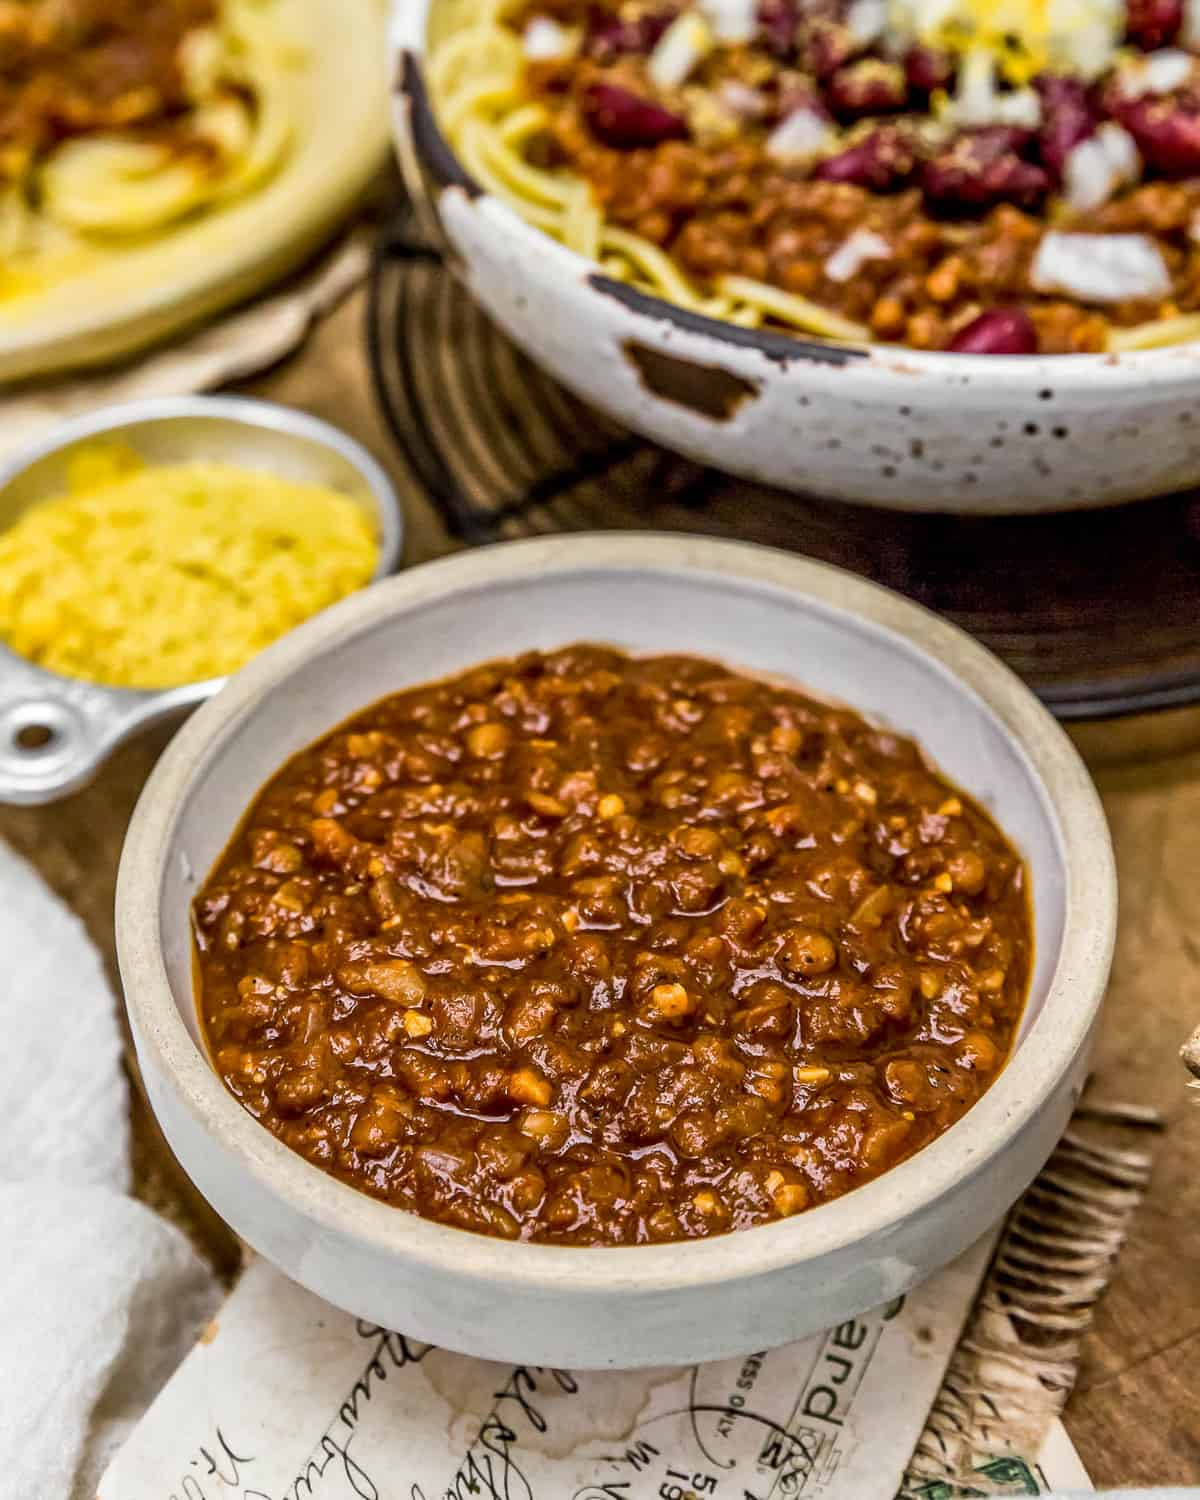 Vegan Cincinnati Chili in a bowl